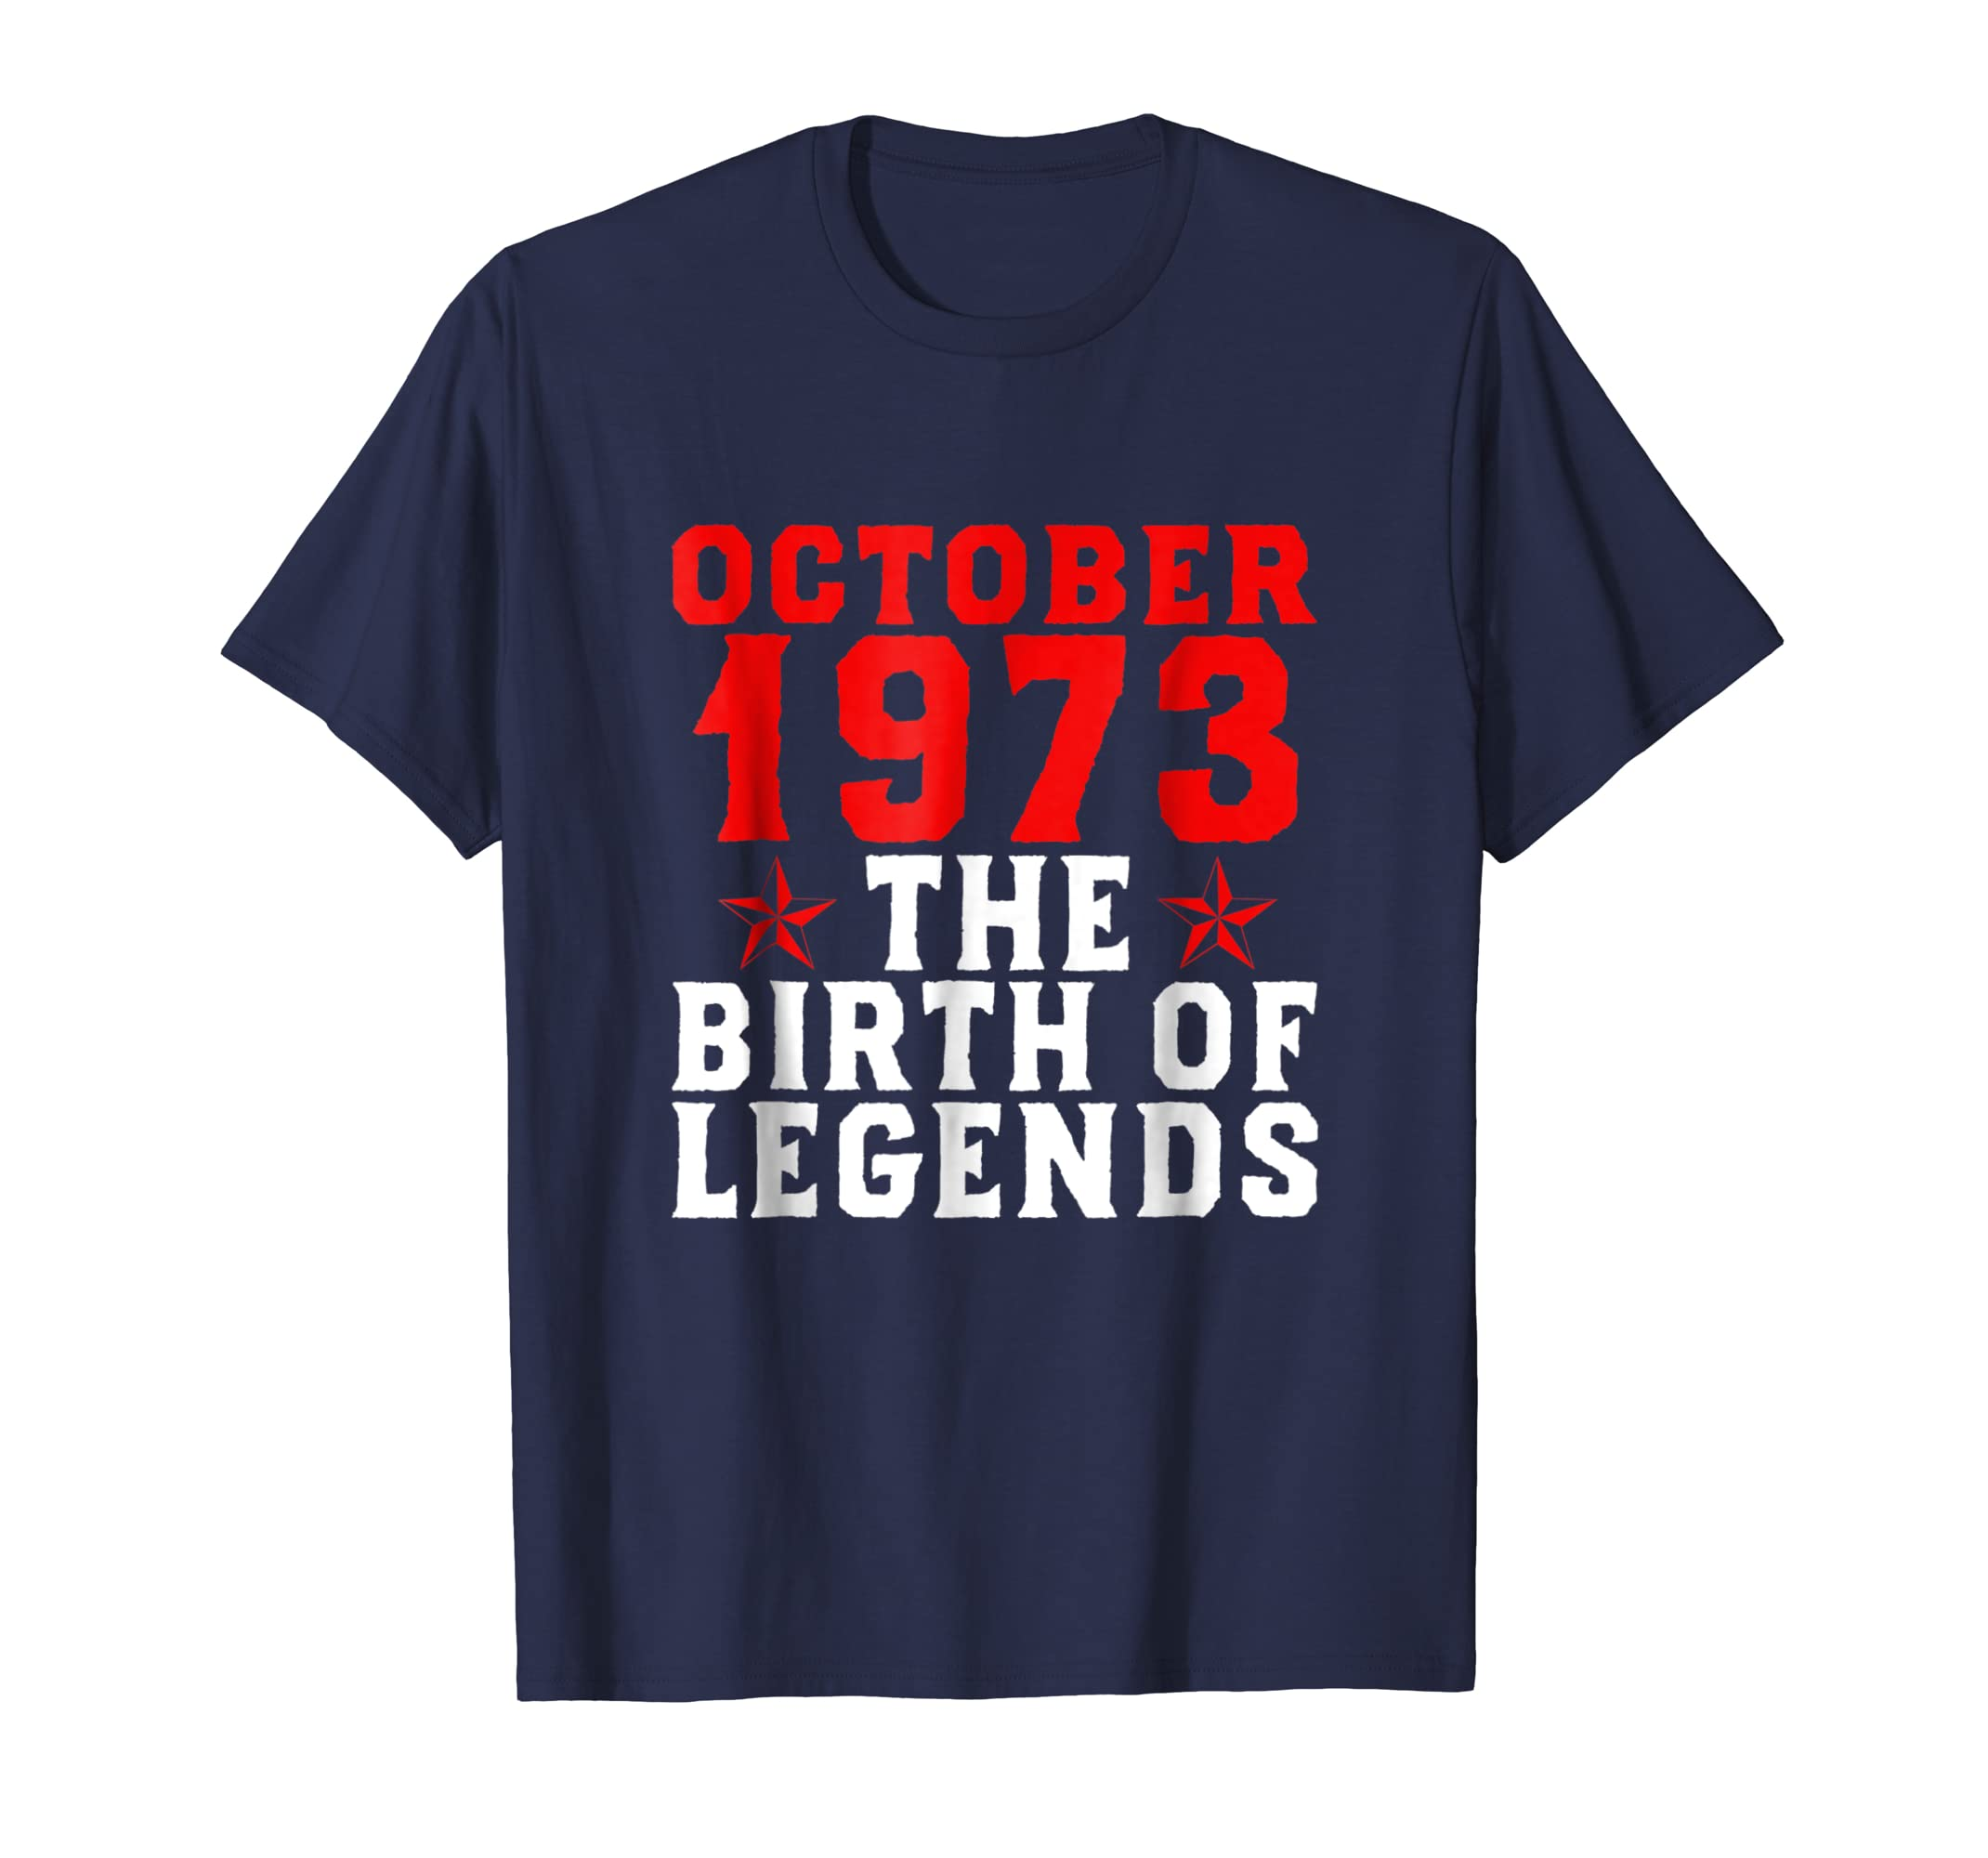 45th Birthday Gift October 1973 Shirt The Birth Of Legends-ln